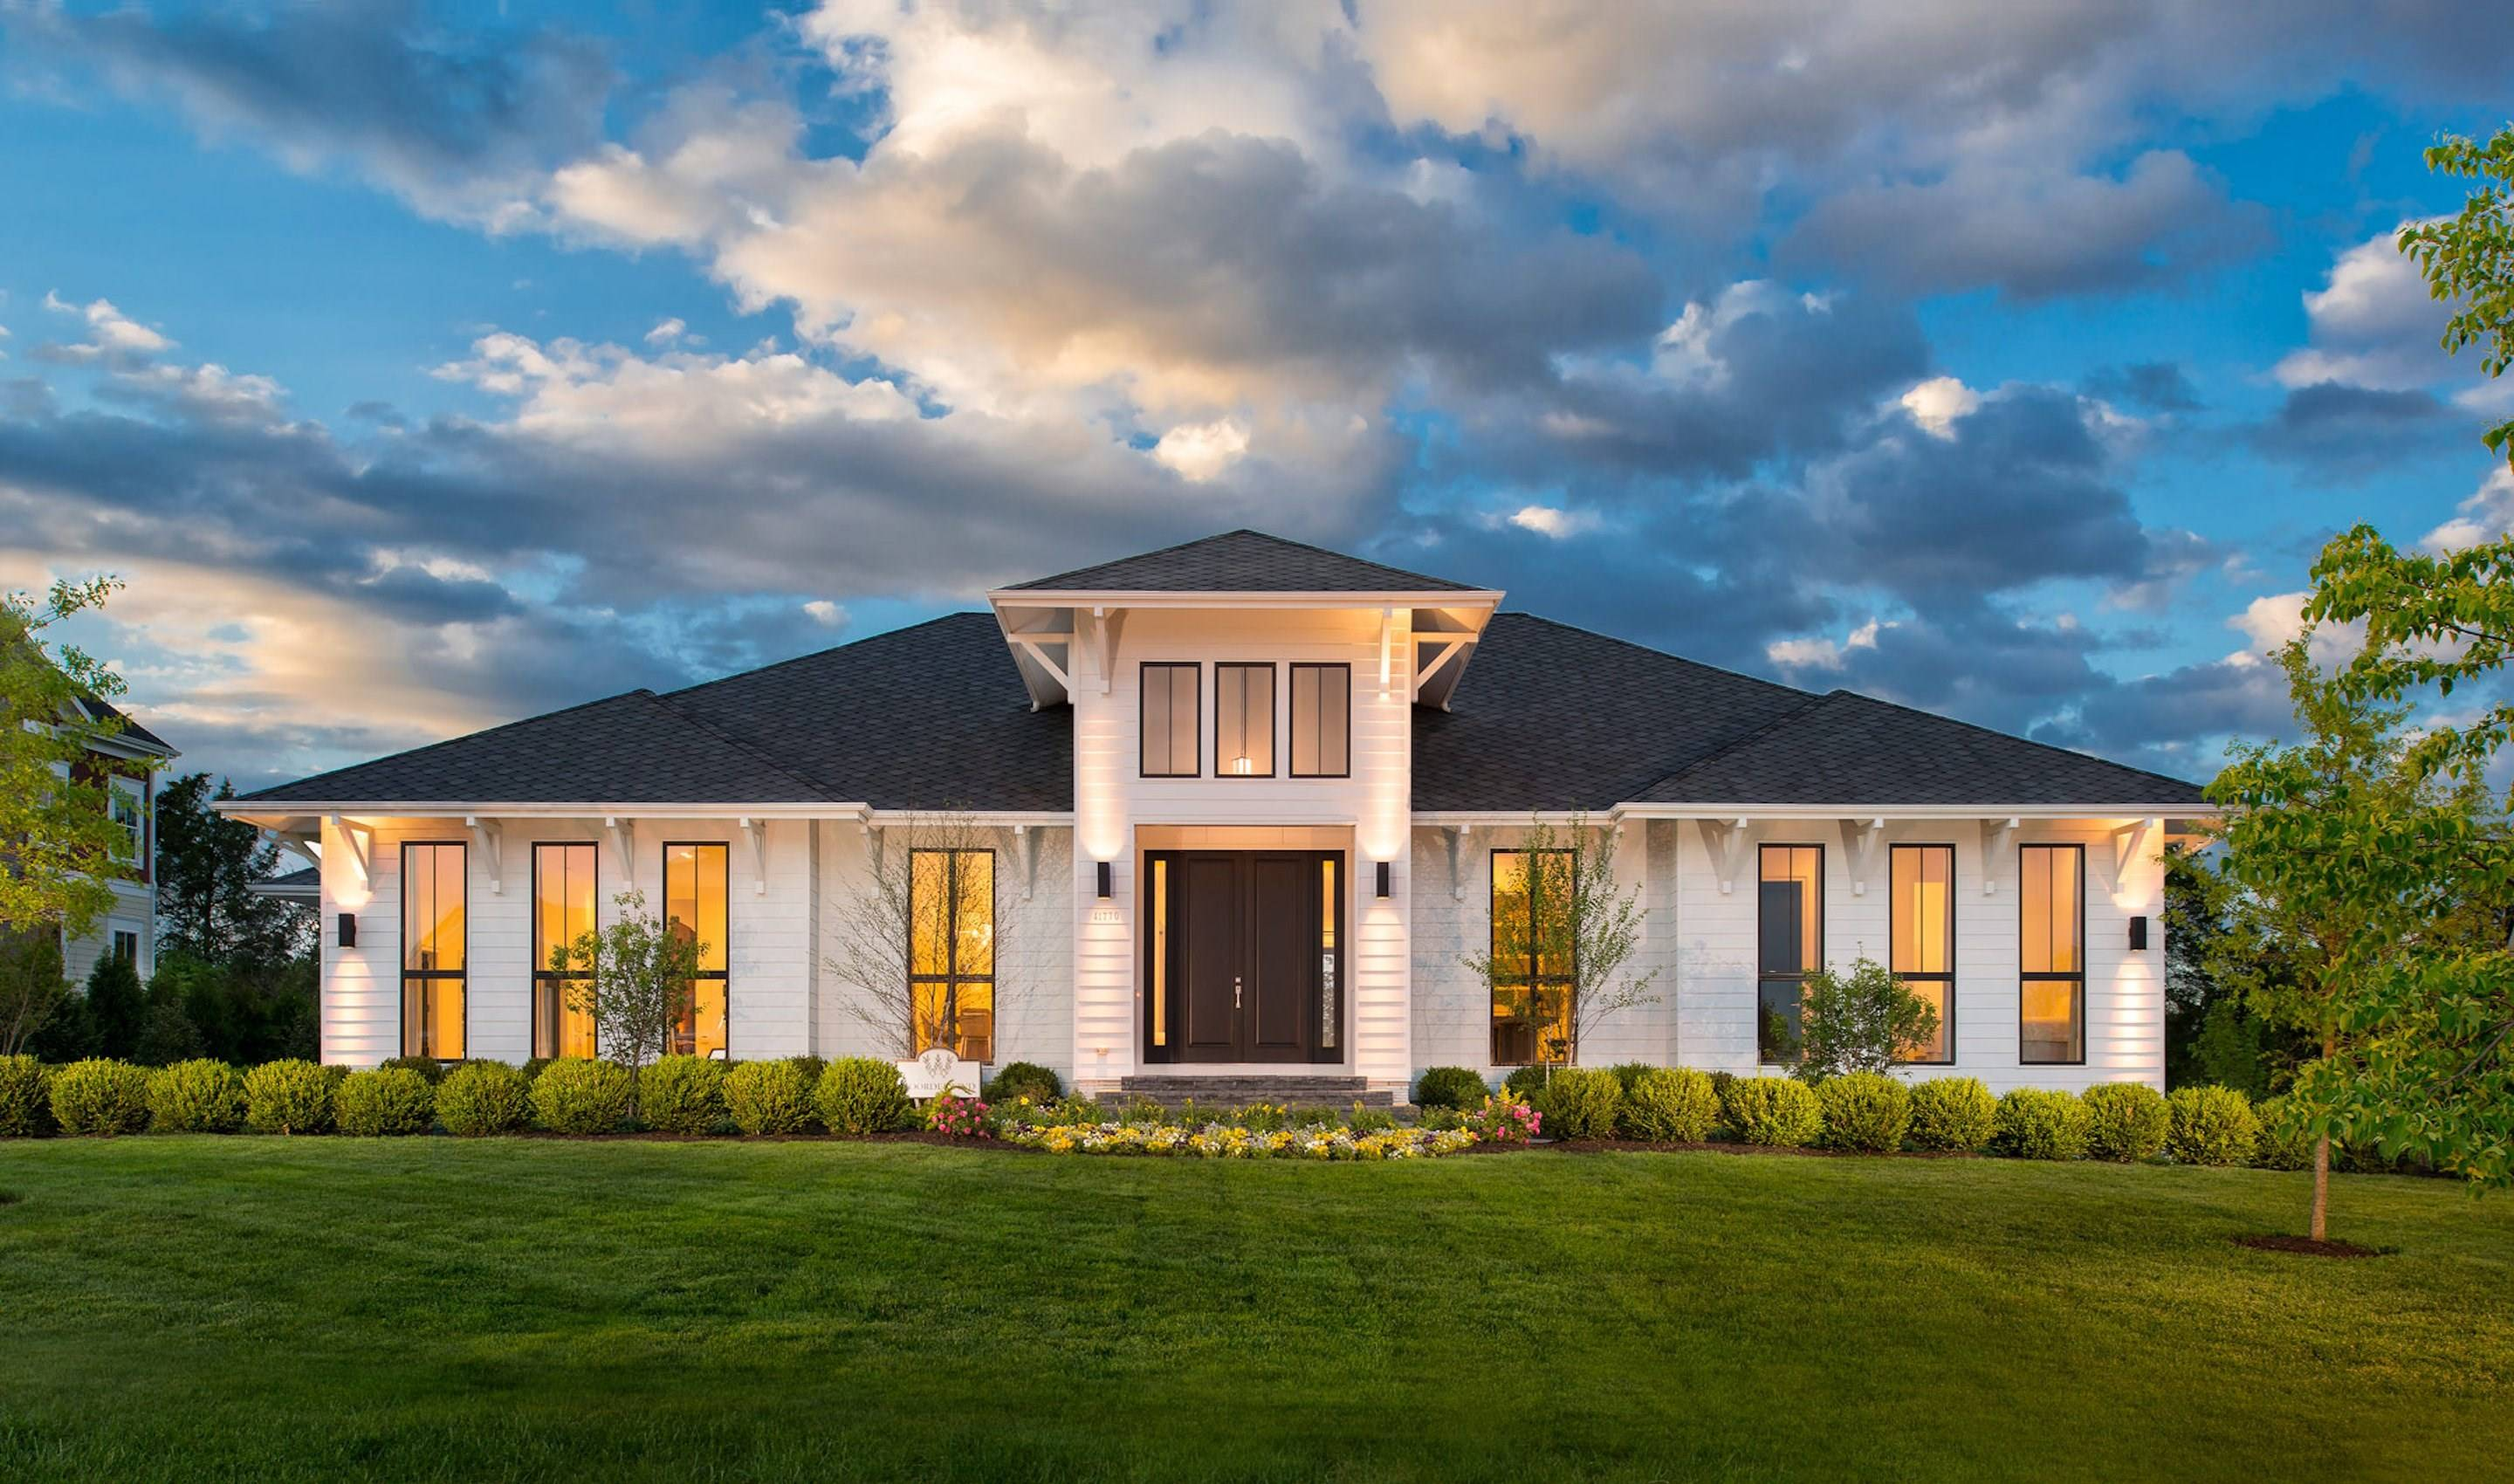 K Hovnanian New Home Builder